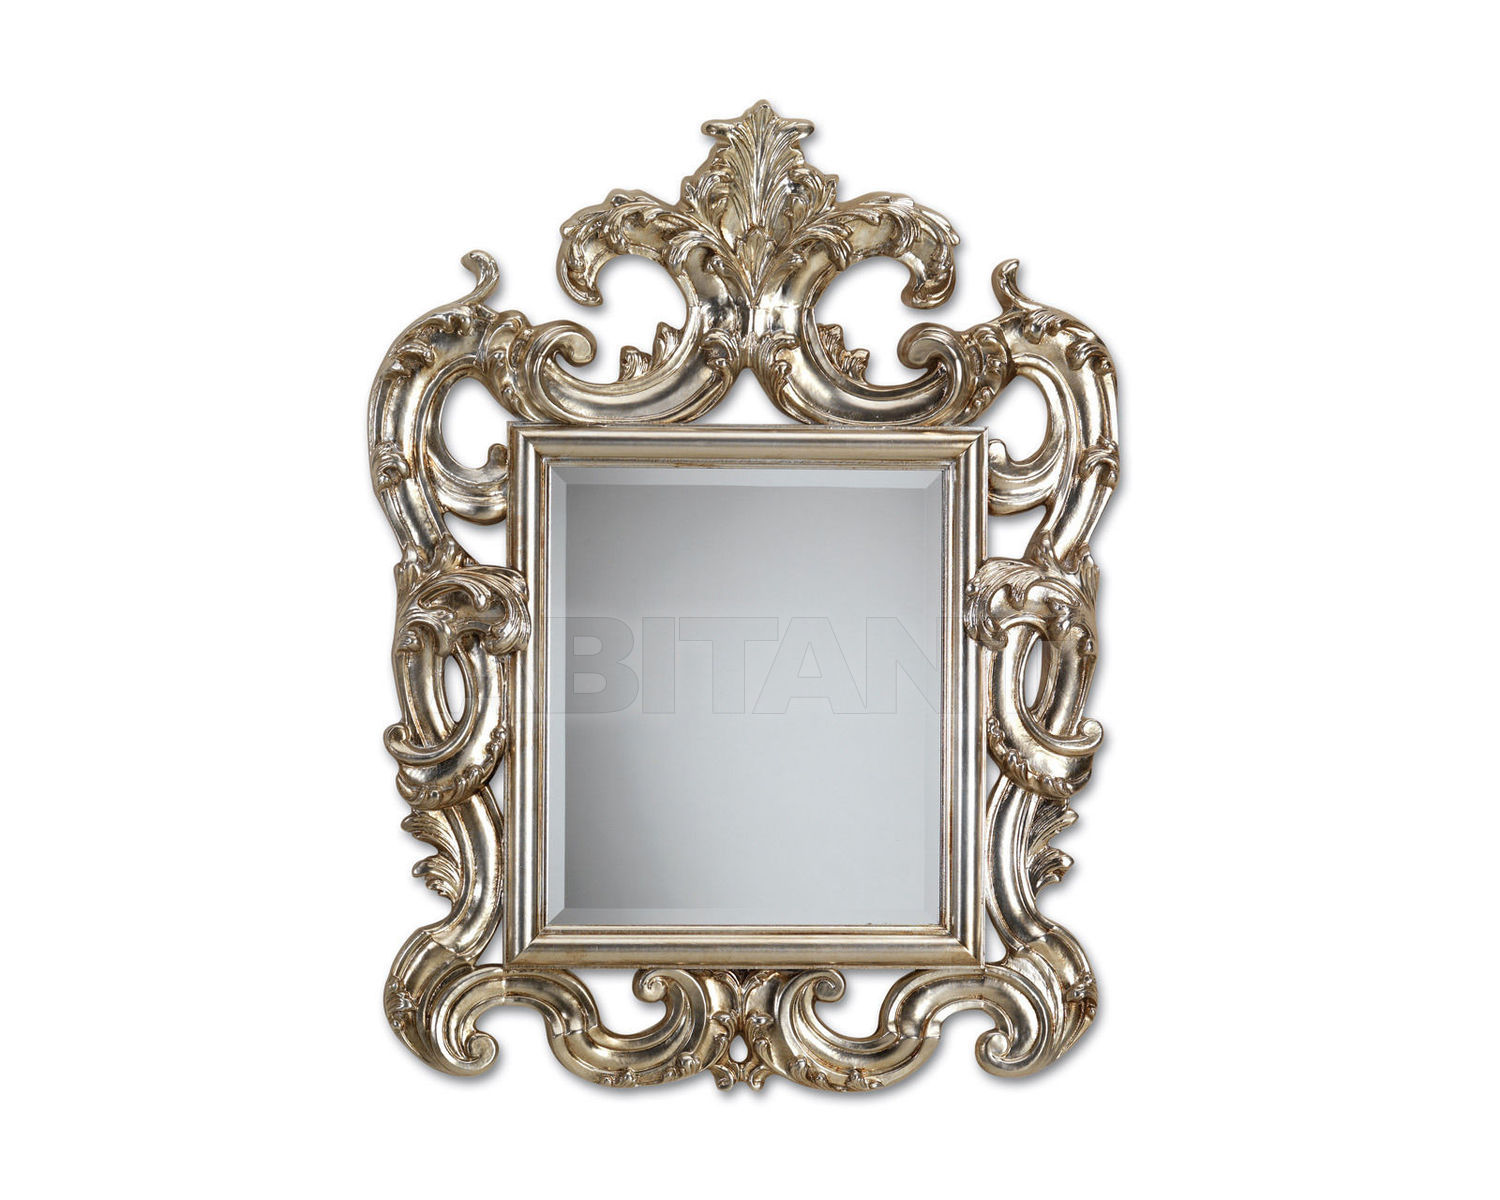 Buy Wall mirror MO.WA Generale 2013 8060